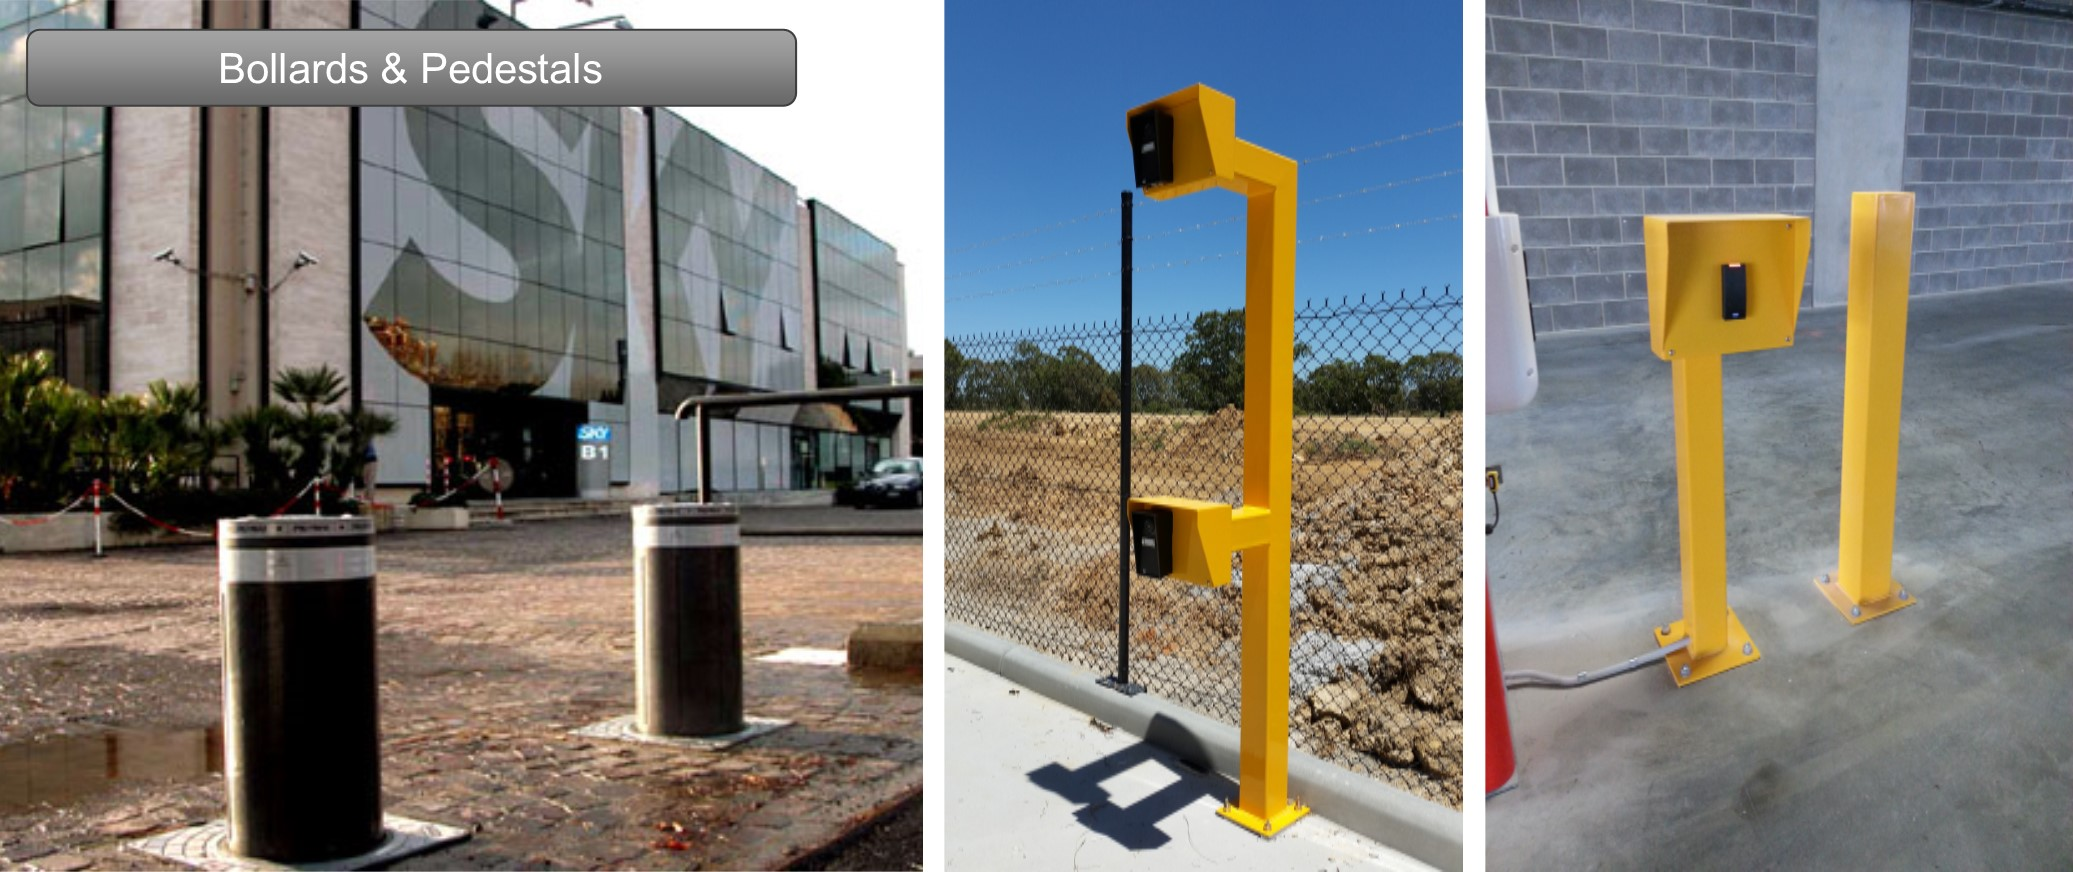 Using elegant and robust designs, Australian Automation bollards are the perfect way to control vehicle access. Depending on your unique situation, you may choose to install fixed, retractable or removable bollards.